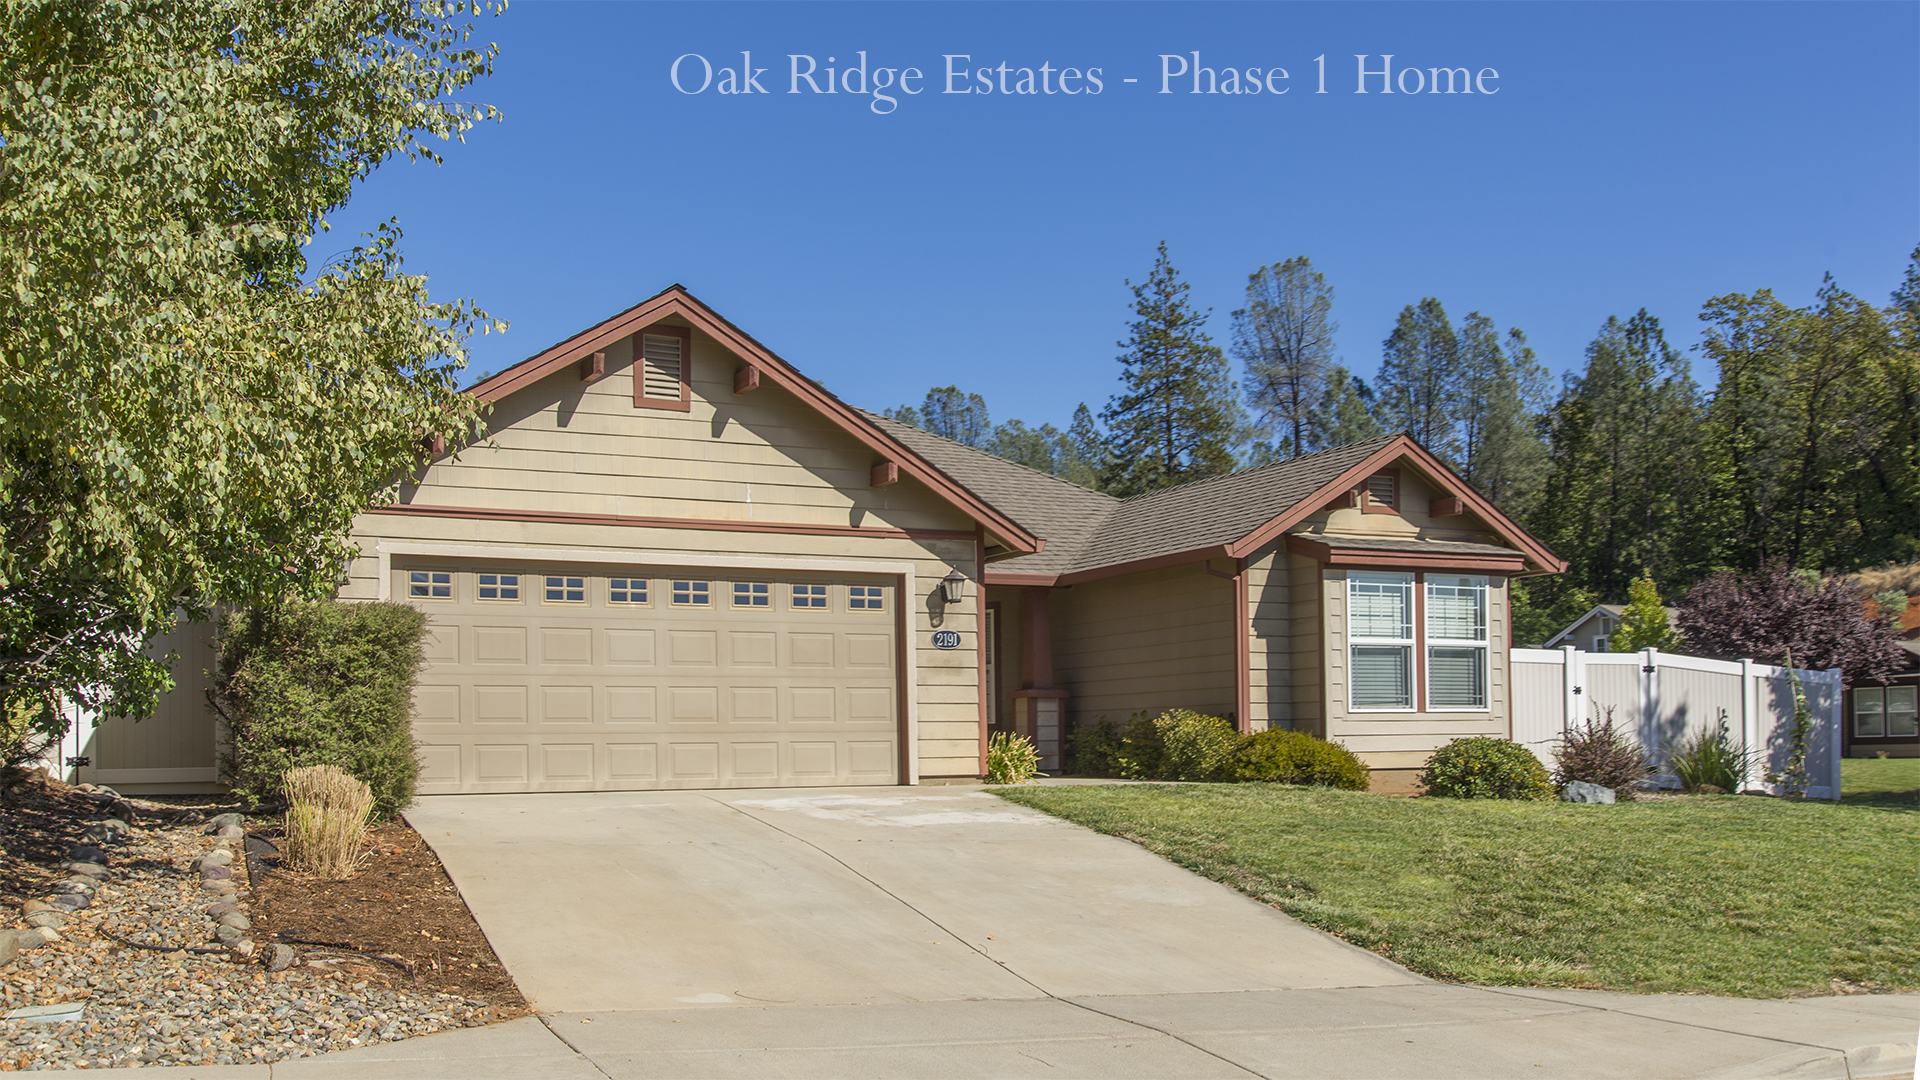 Oakridge Phase I Home 4